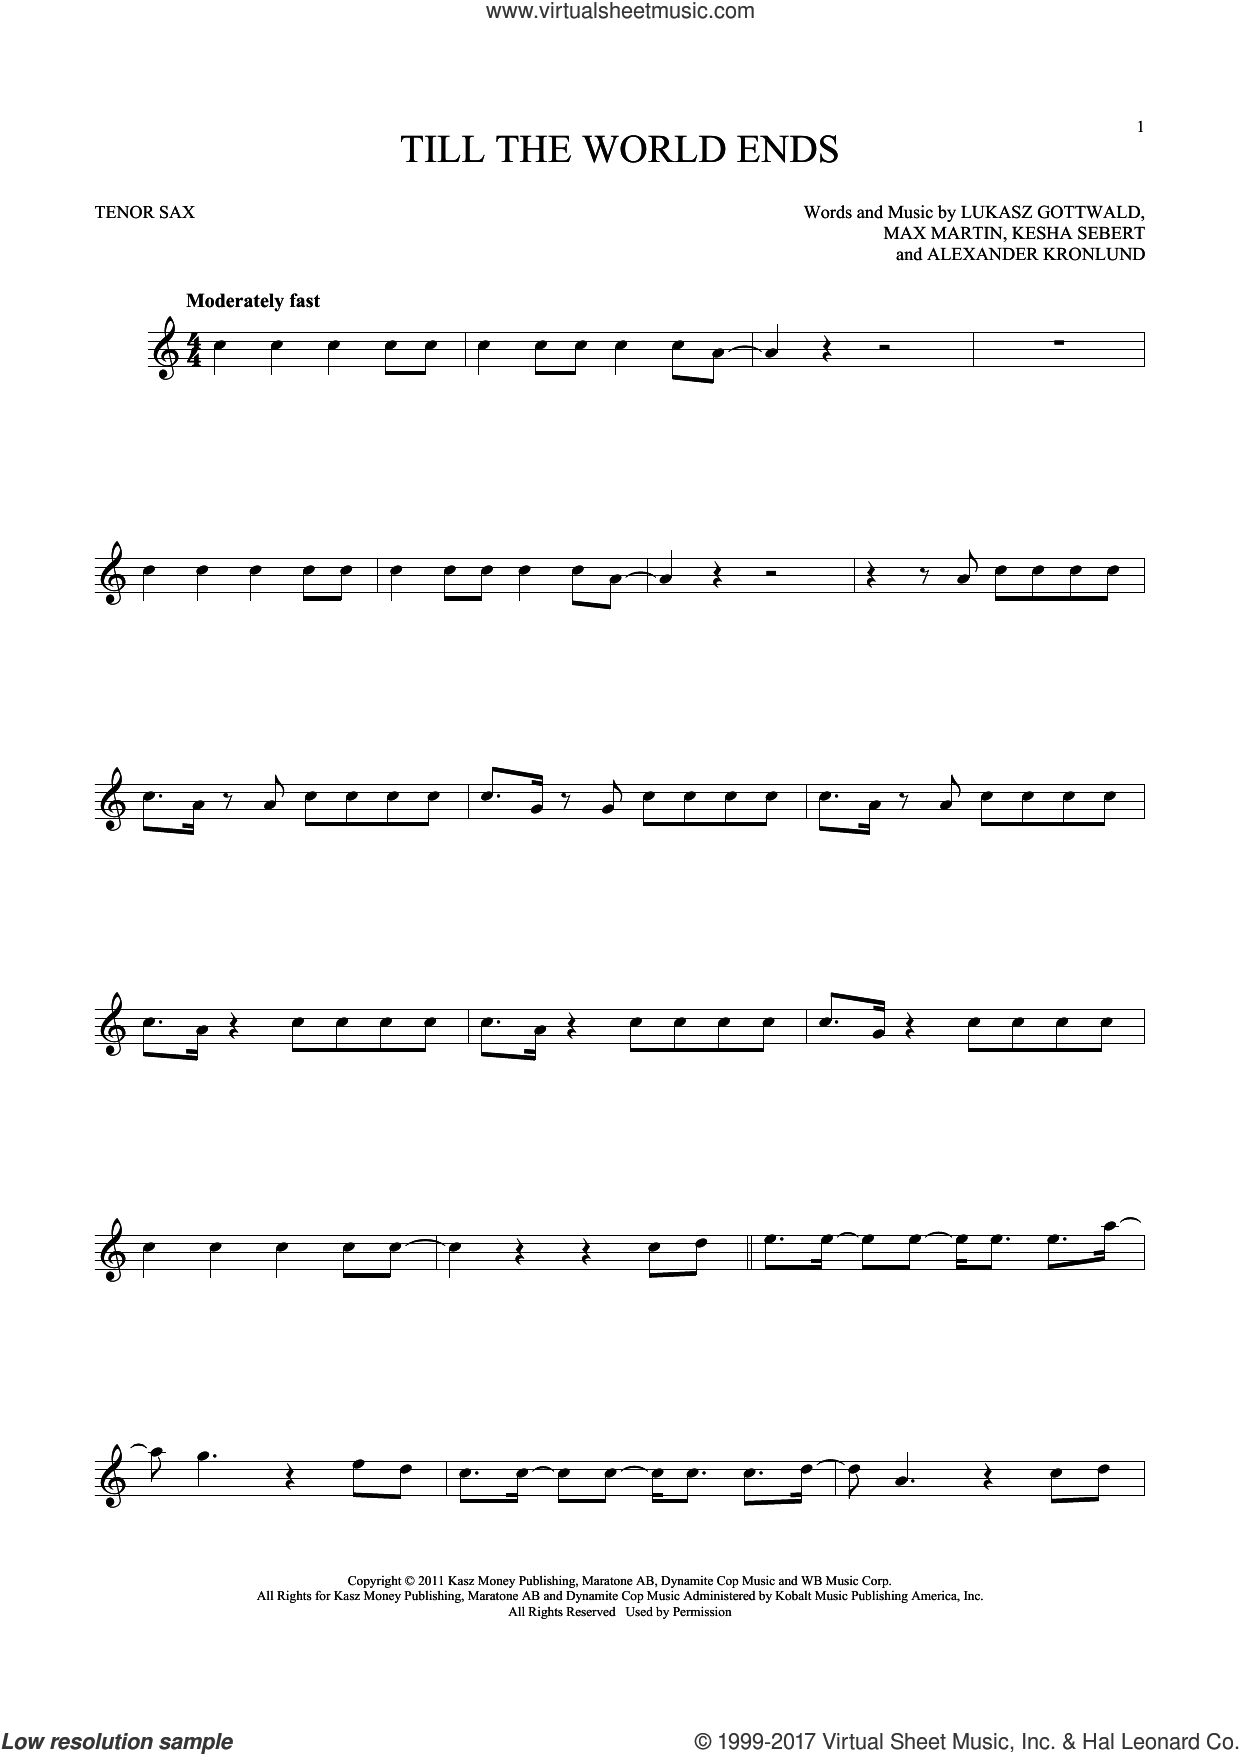 Till The World Ends sheet music for tenor saxophone solo ( Sax) by Britney Spears, Alexander Kronlund, Kesha Sebert, Lukasz Gottwald and Max Martin, intermediate tenor saxophone ( Sax)